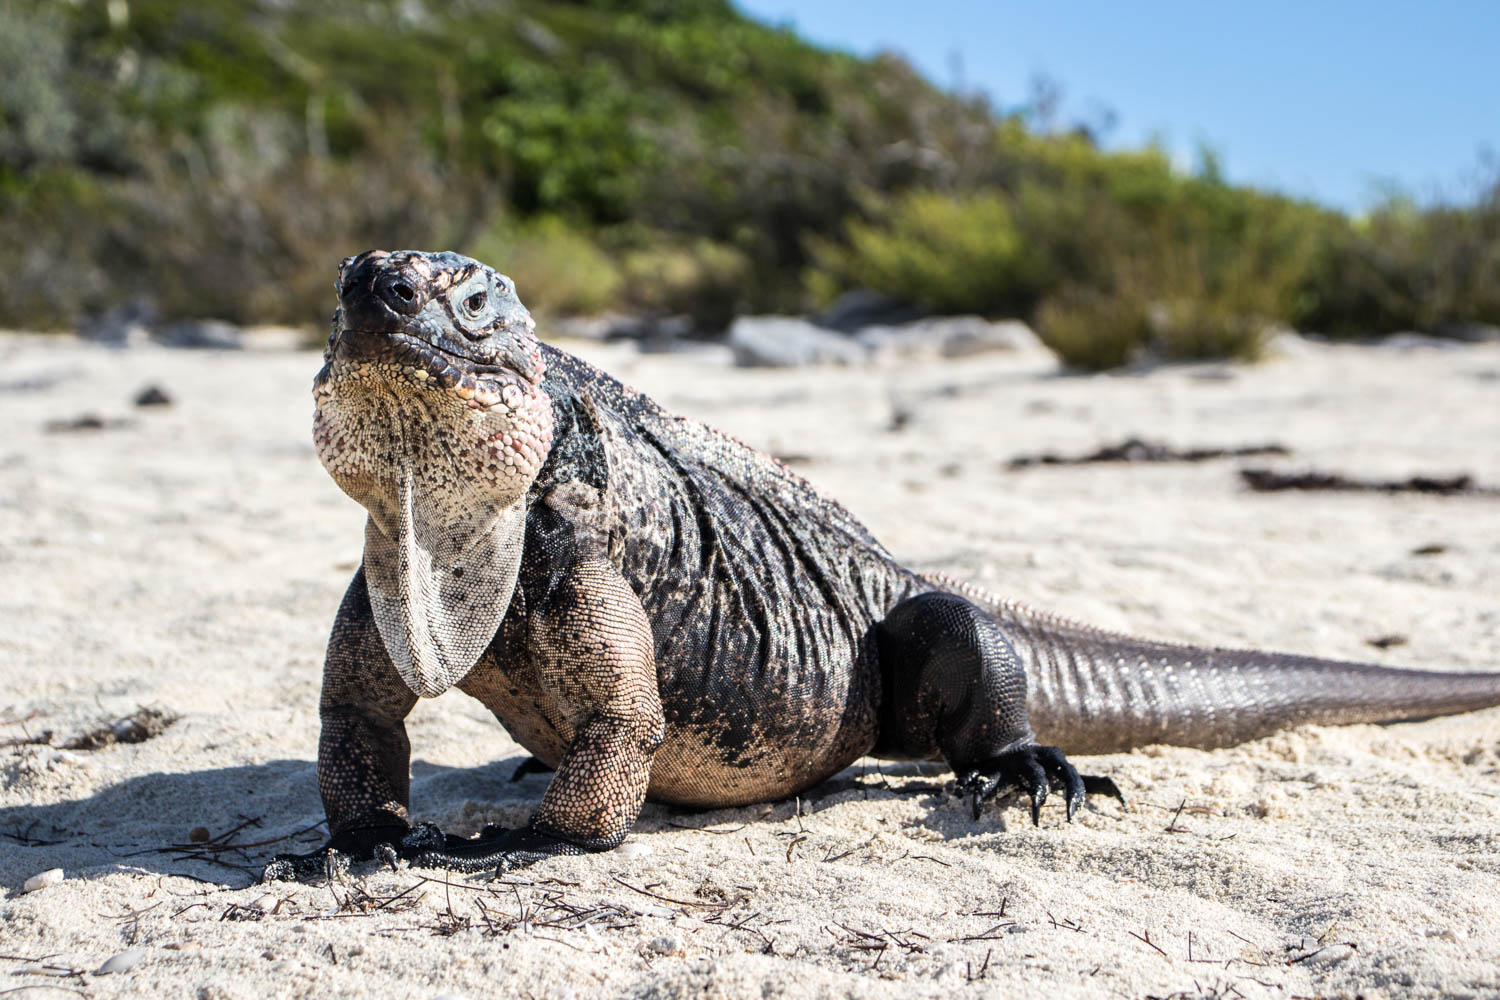 Exuma tours from Nassau can take you to see the Bahamian Rock Iguanas. Exuma excursions from Nassau occur daily.